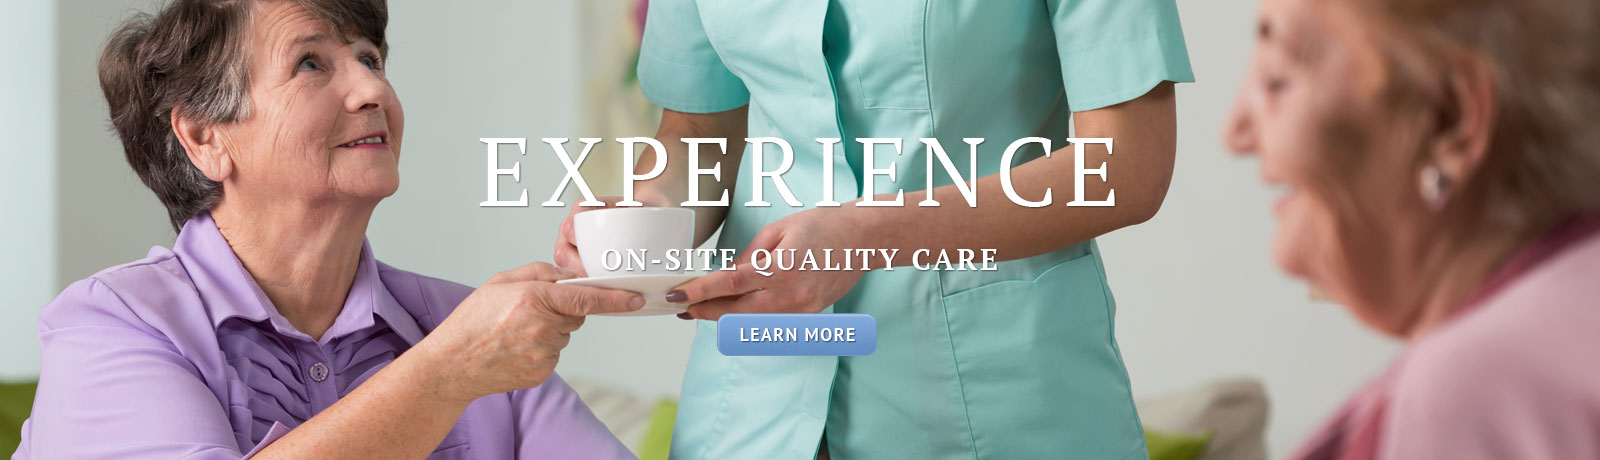 Experience on-site quality care